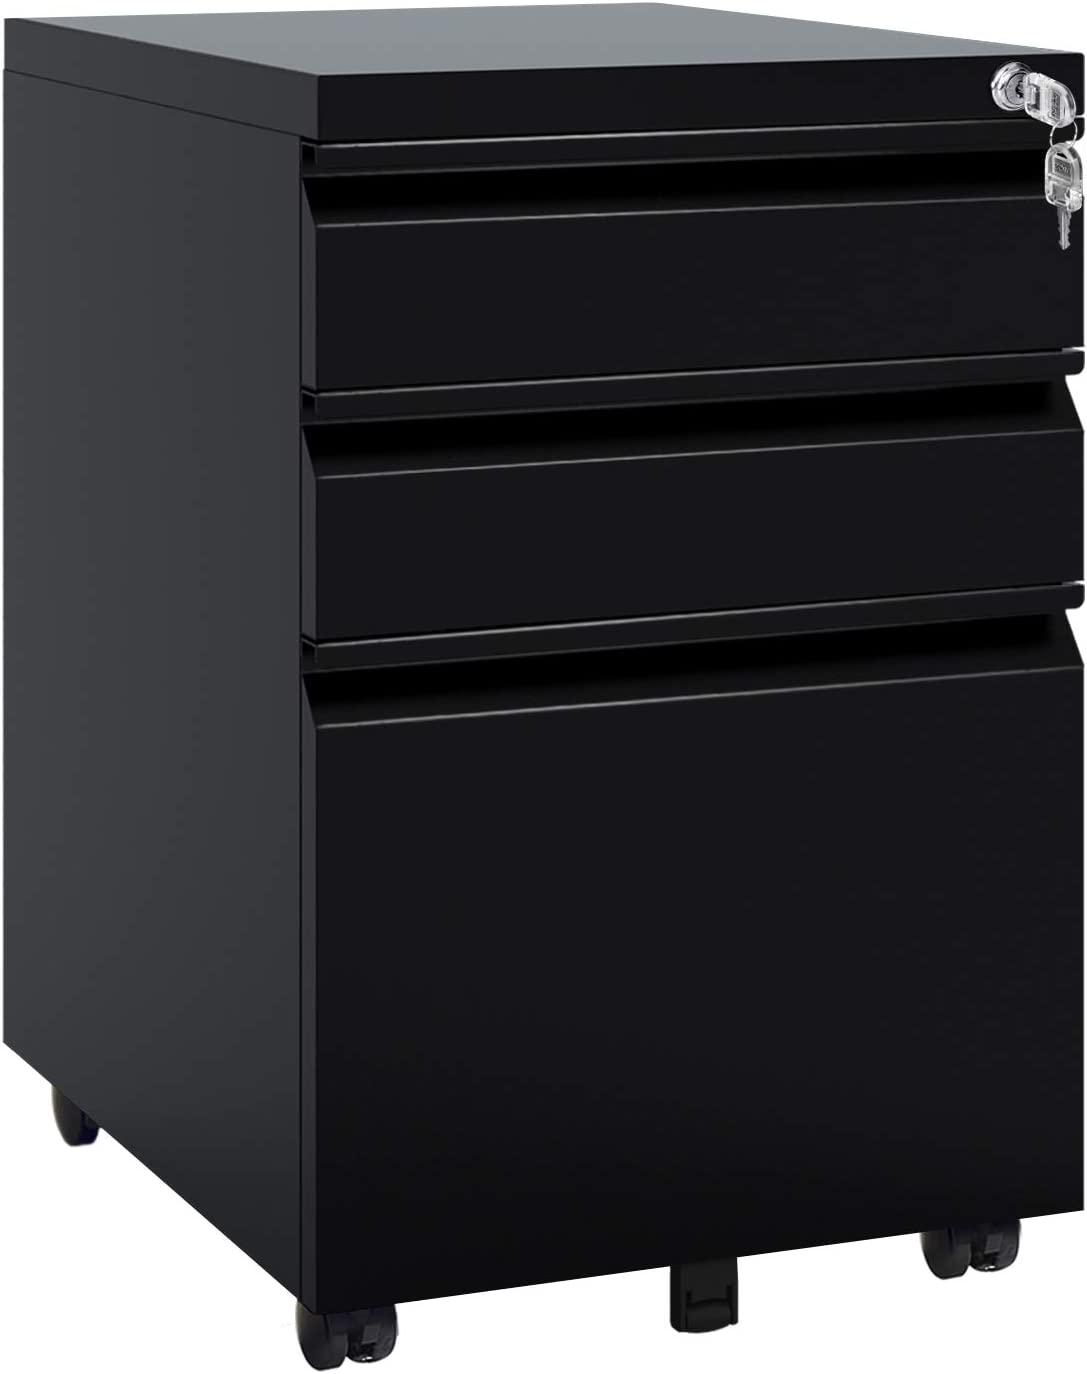 DEVAISE 334 Drawer Mobile File Cabinet with Lock, Under Desk Metal Filing  Cabinet for Legal/Letter/A34 File, Fully Assembled Except Wheels, Black